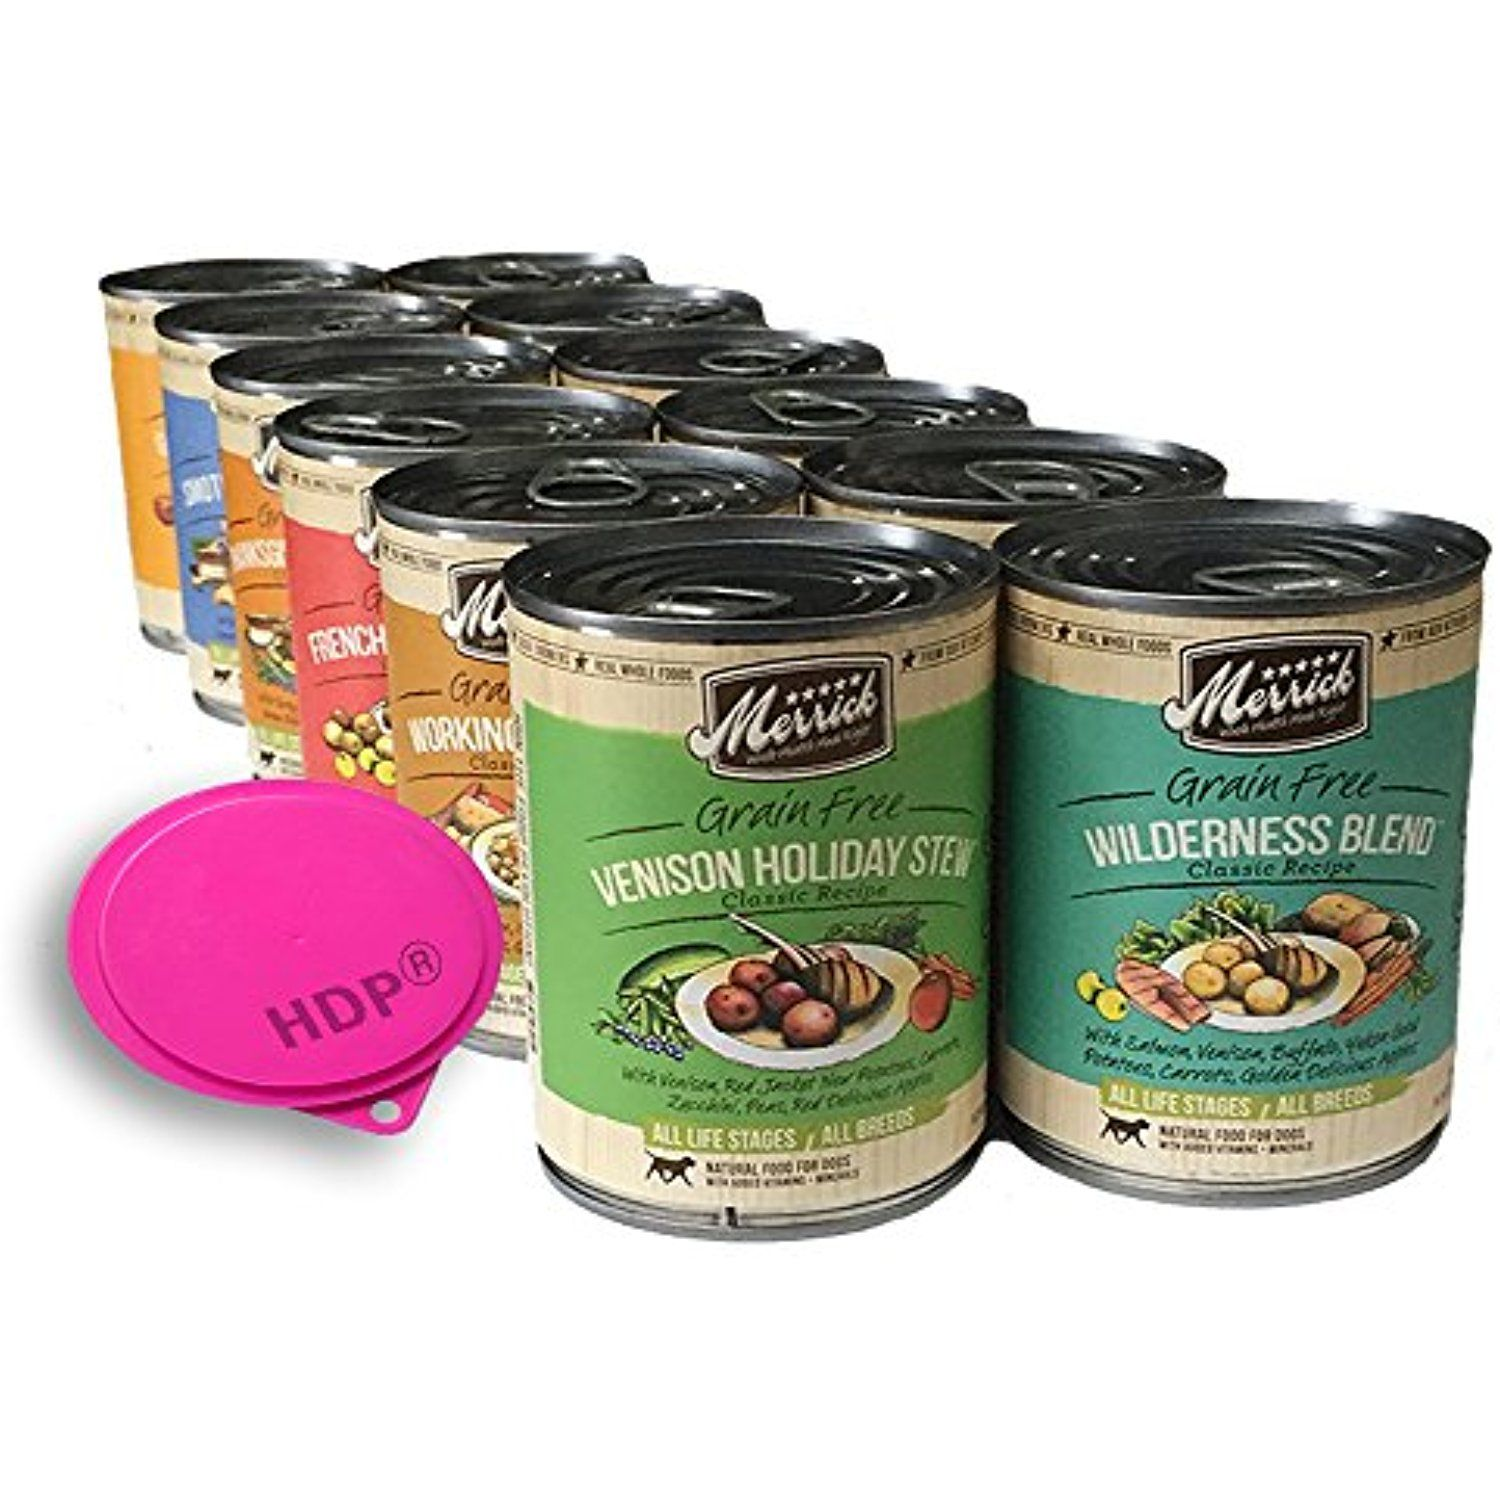 12 Merrick Cans 13.2oz. Mix and Match Do you want